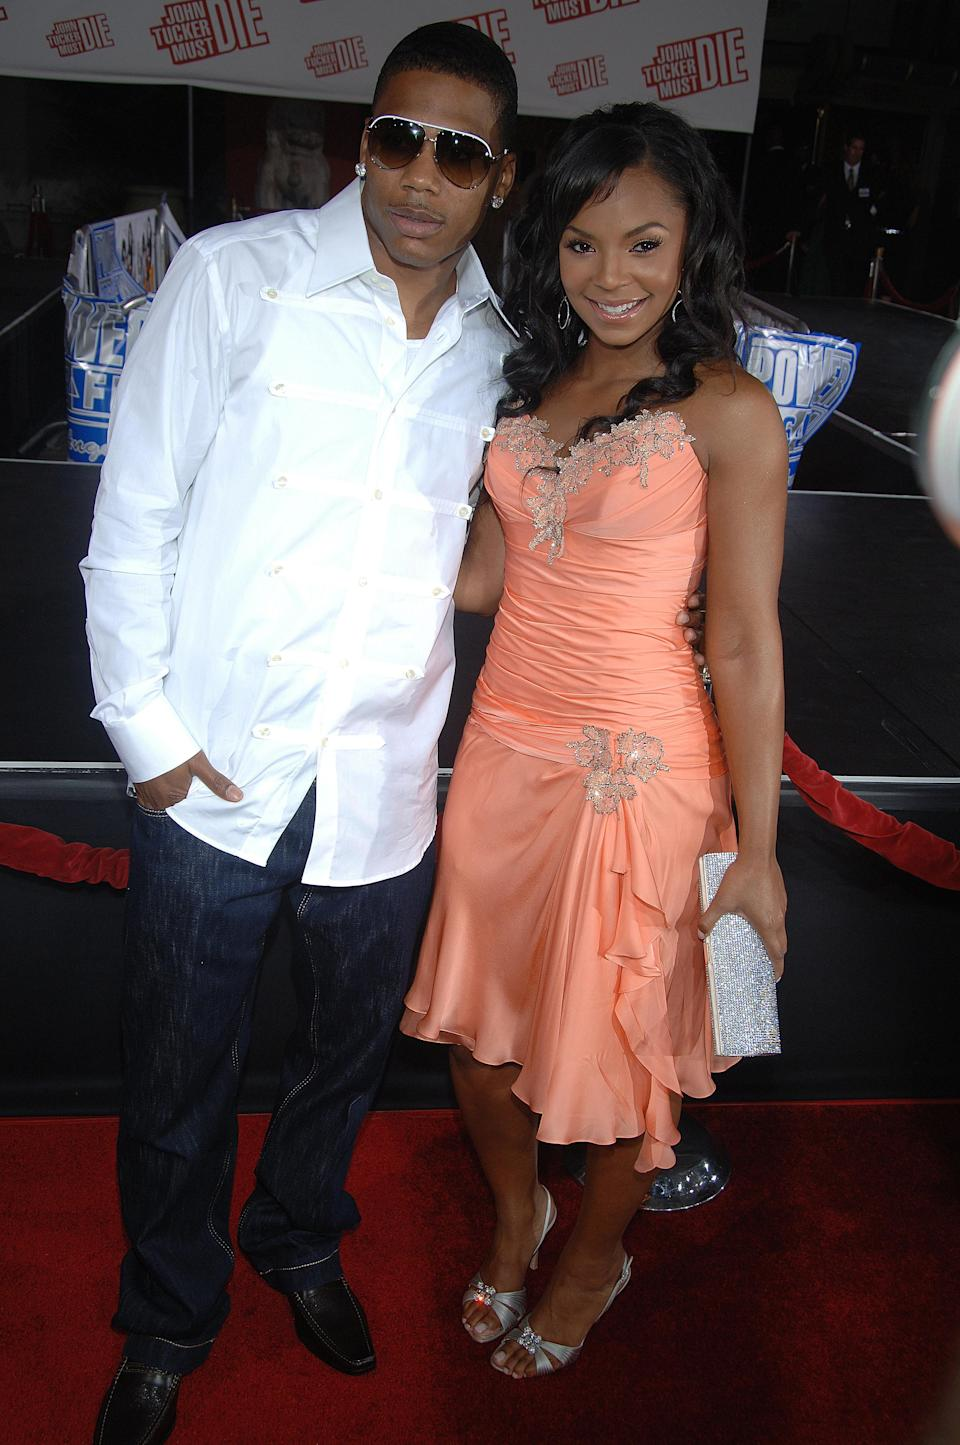 Nelly and Ashanti at an awards show